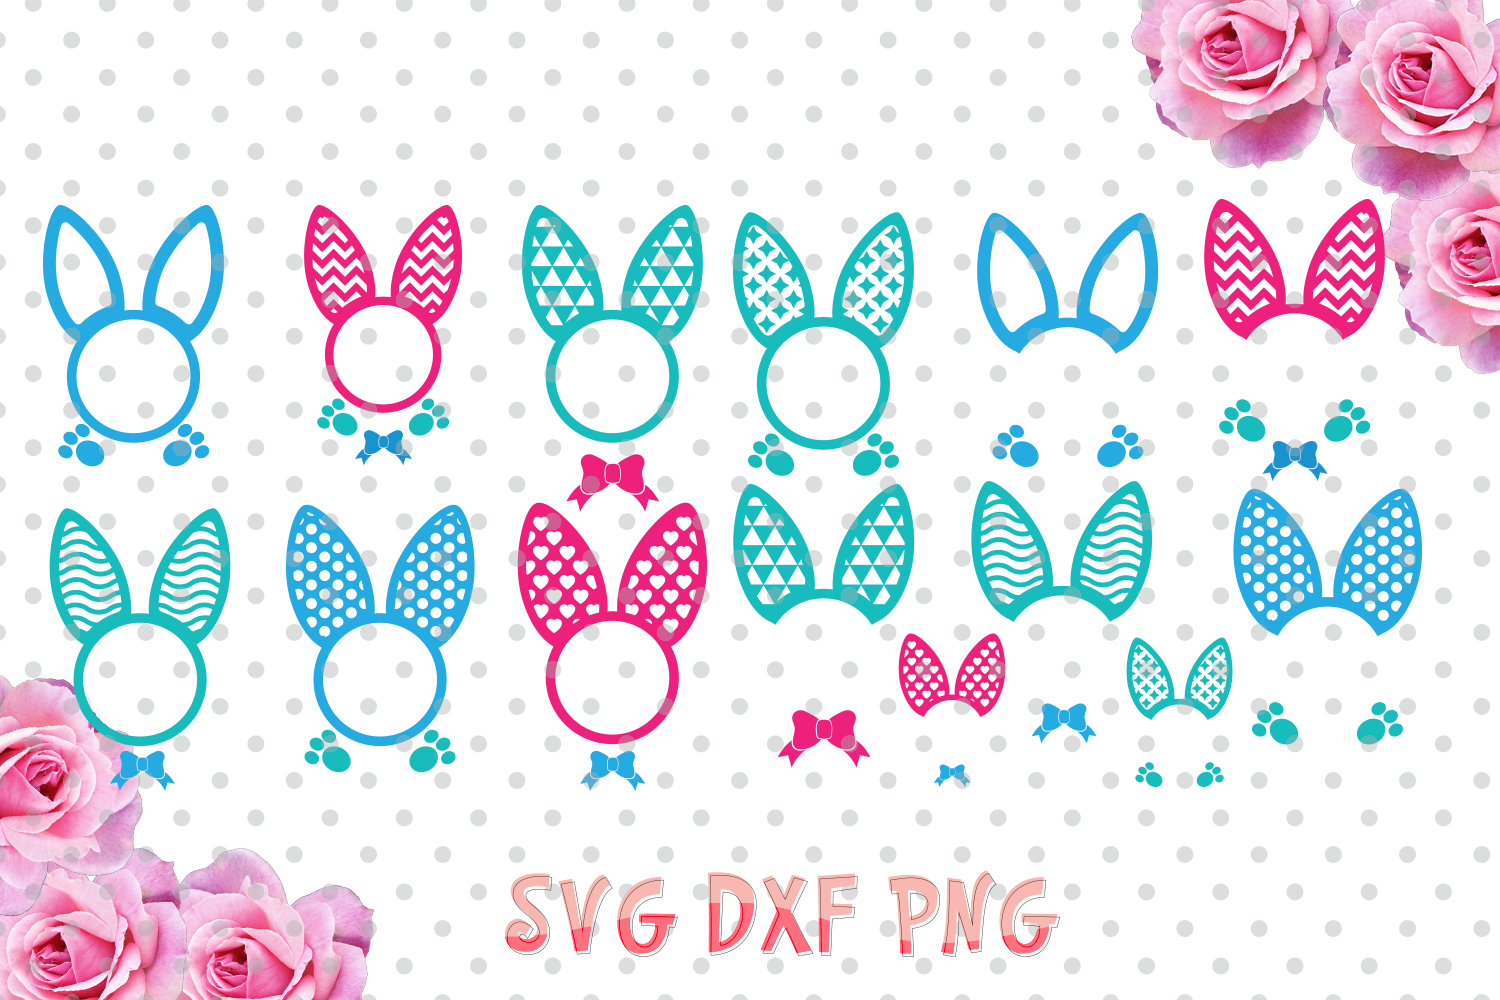 Easter bunny ears Monogram Frames Svg cutting file, bunny ears SVG, DXF, Cricut Design Space, Silhouette Studio,Digital Cut Files example image 2